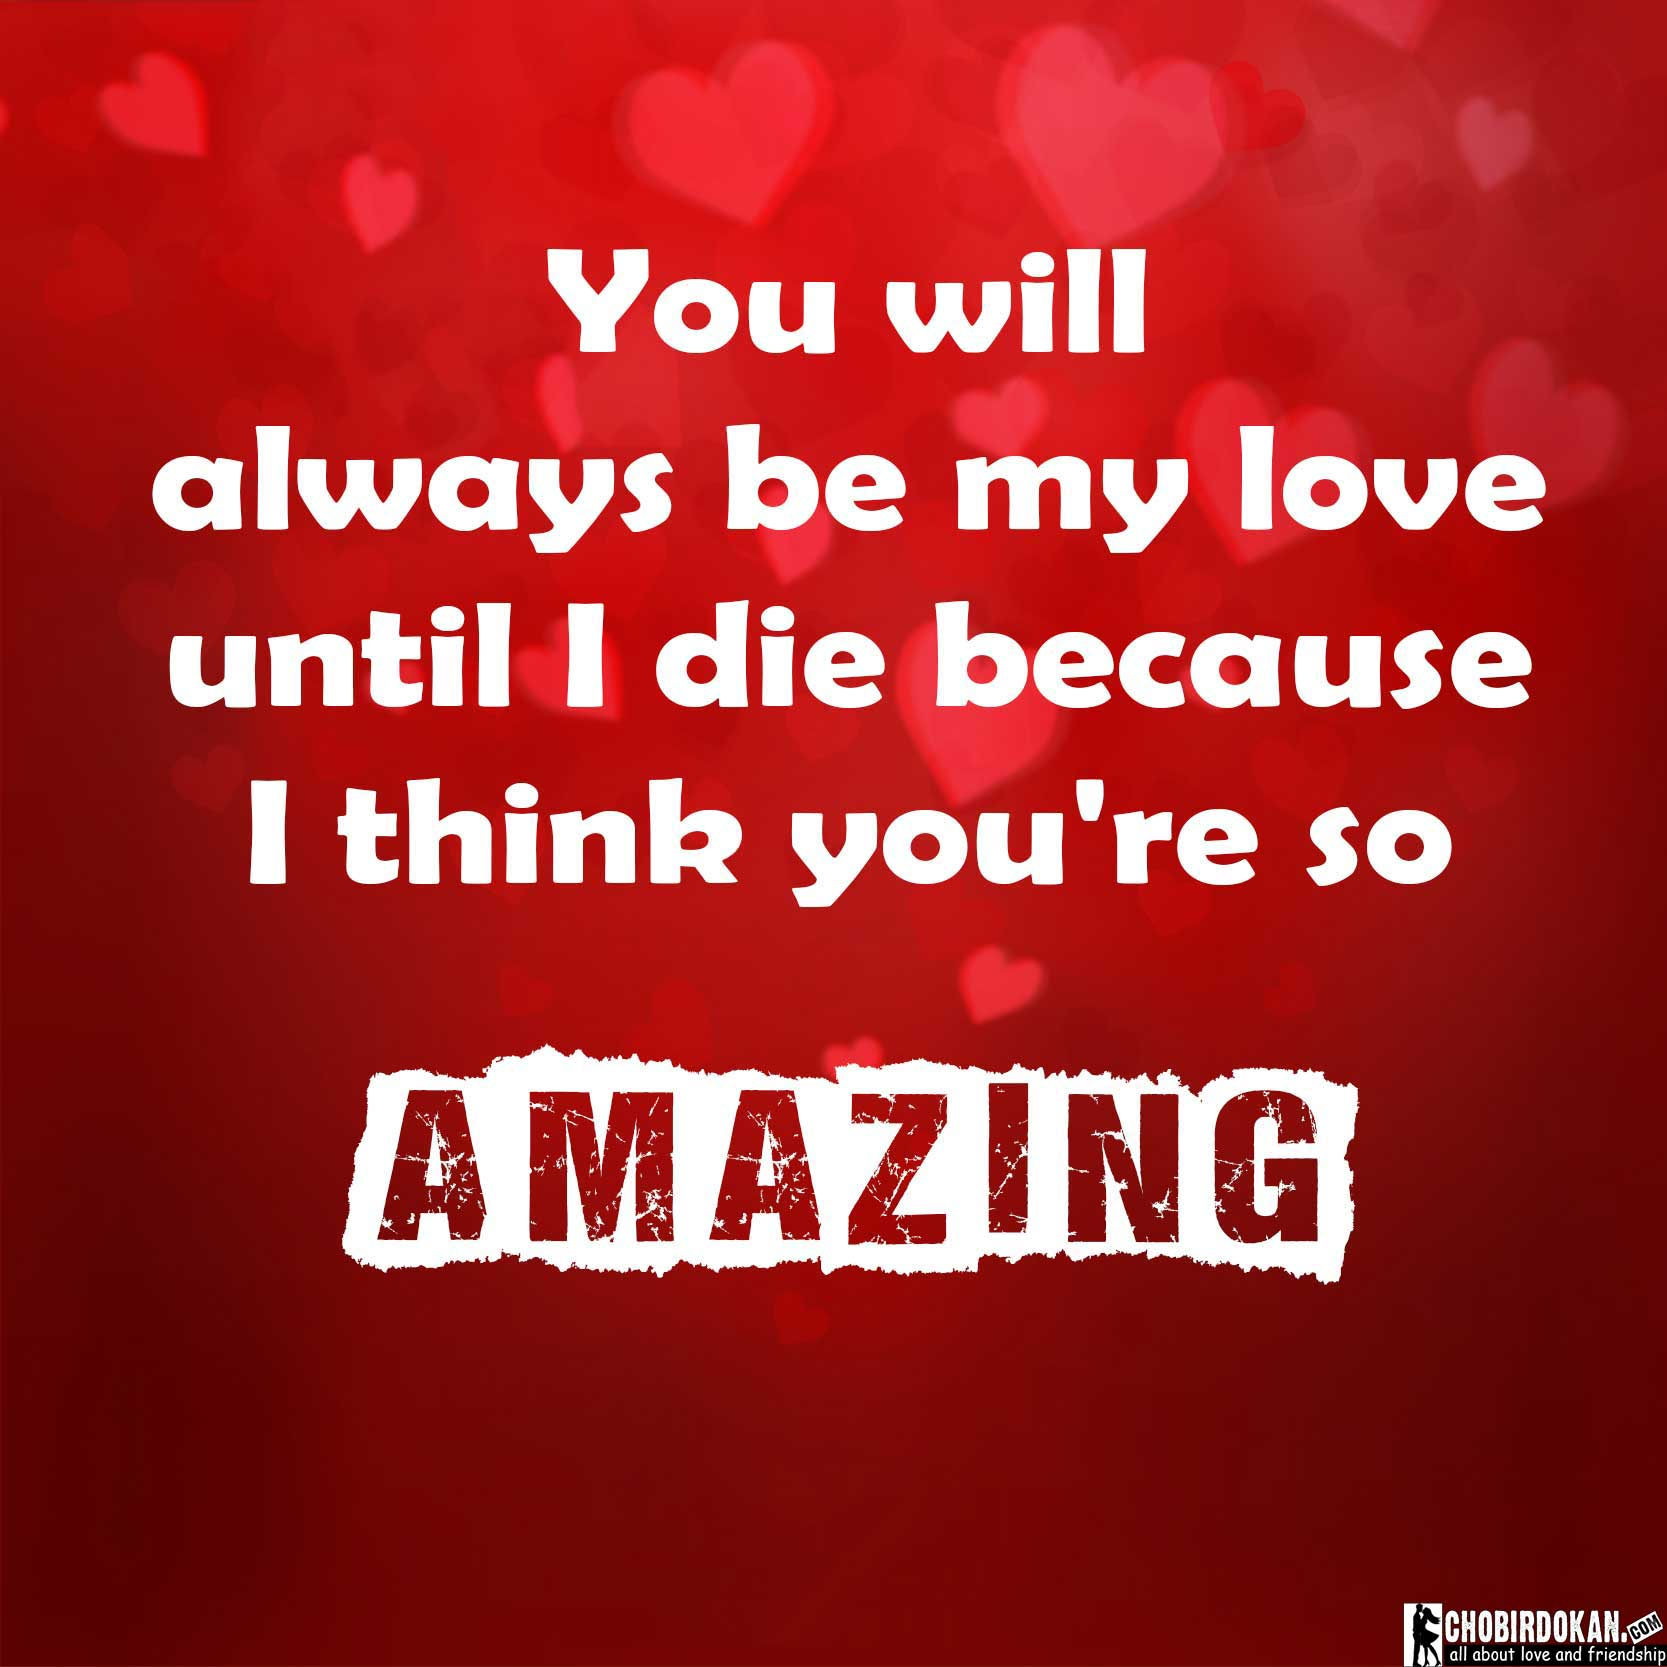 You Are Amazing And I Love You: You Are Amazing Quotes For Him And Her With Images -Chobir